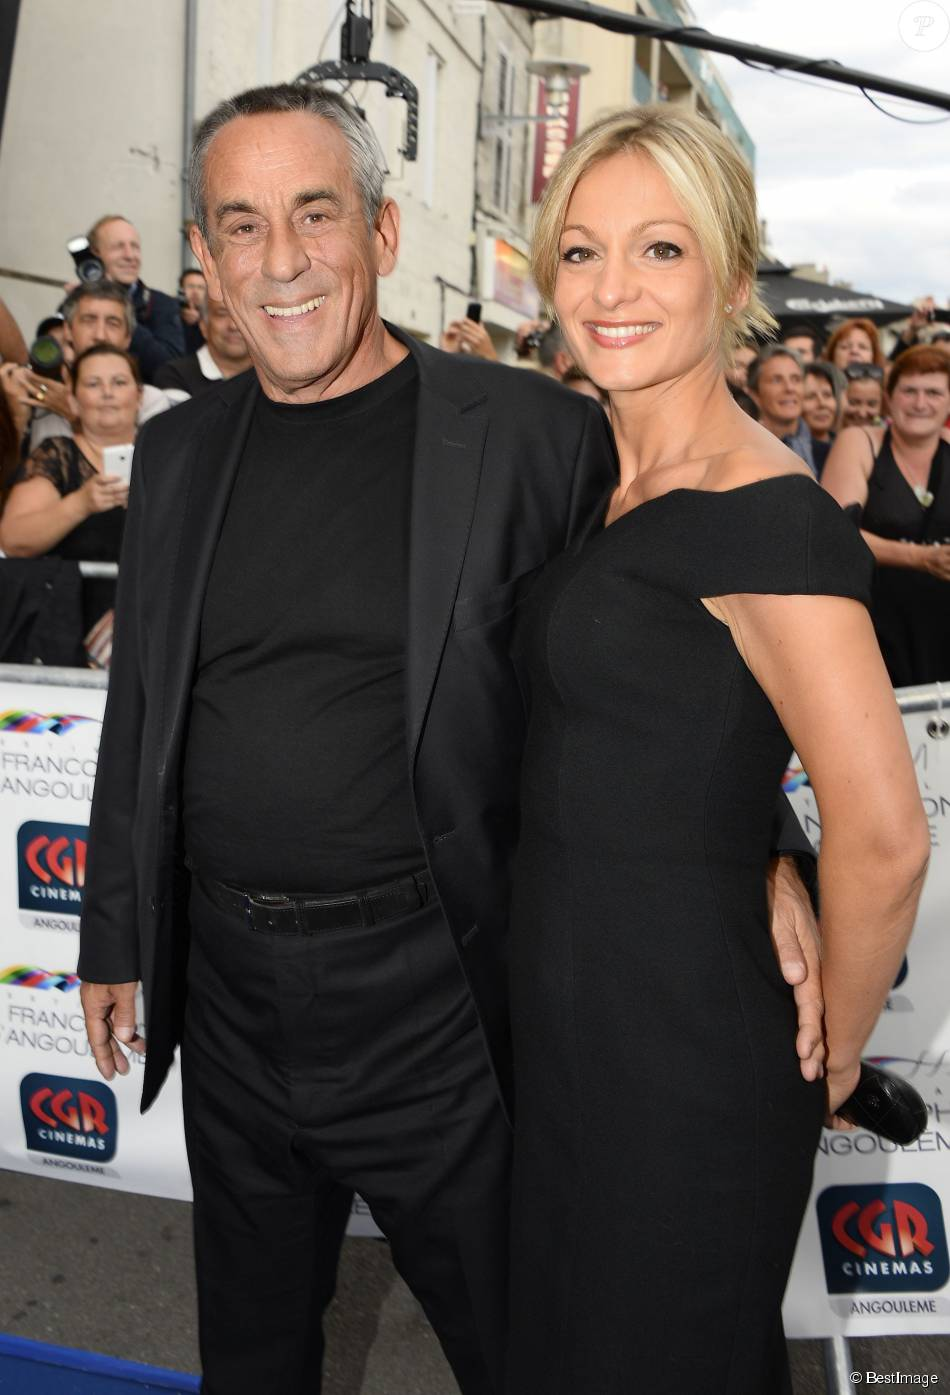 thierry ardisson et sa femme audrey crespo mara avant. Black Bedroom Furniture Sets. Home Design Ideas